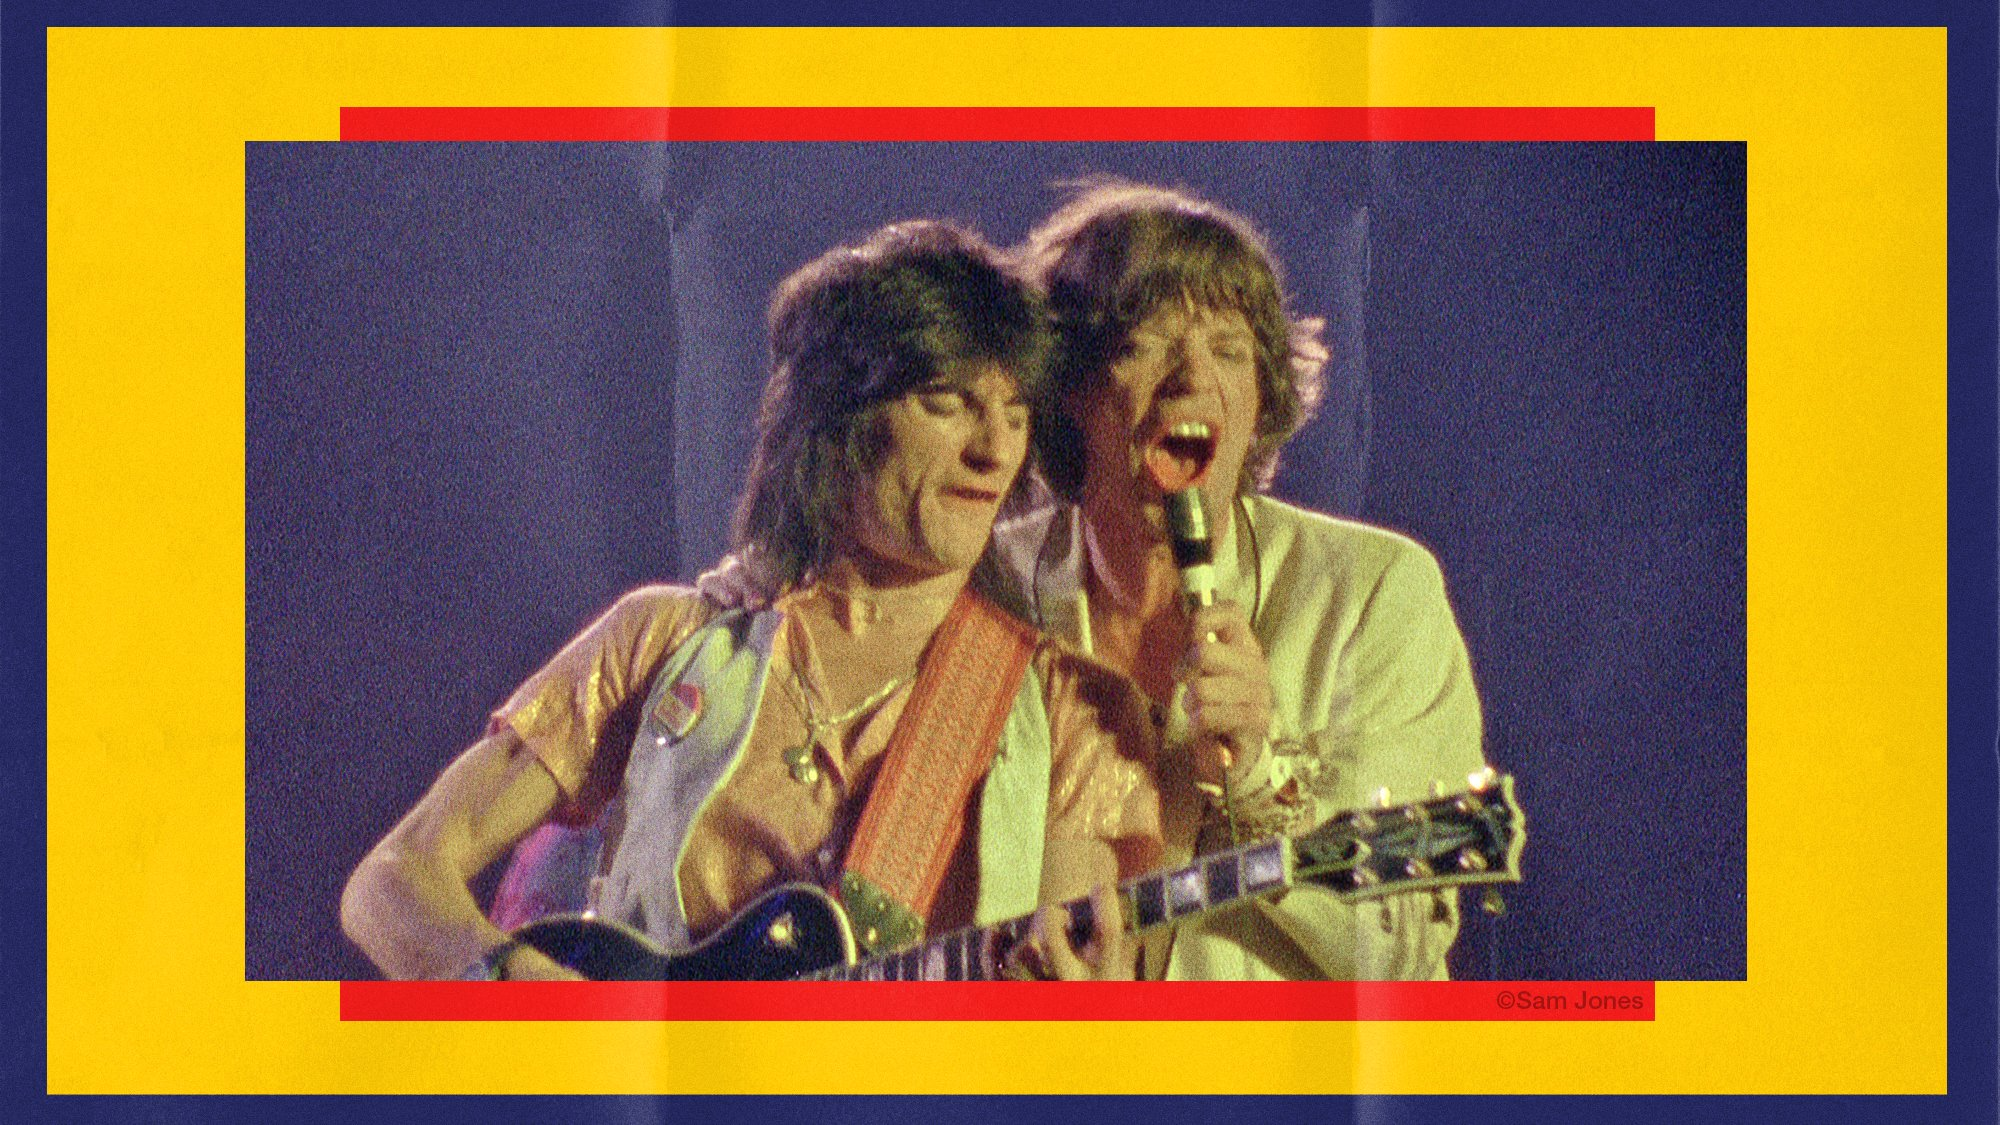 The Rolling Stones: Some Girls Live from Texas '78